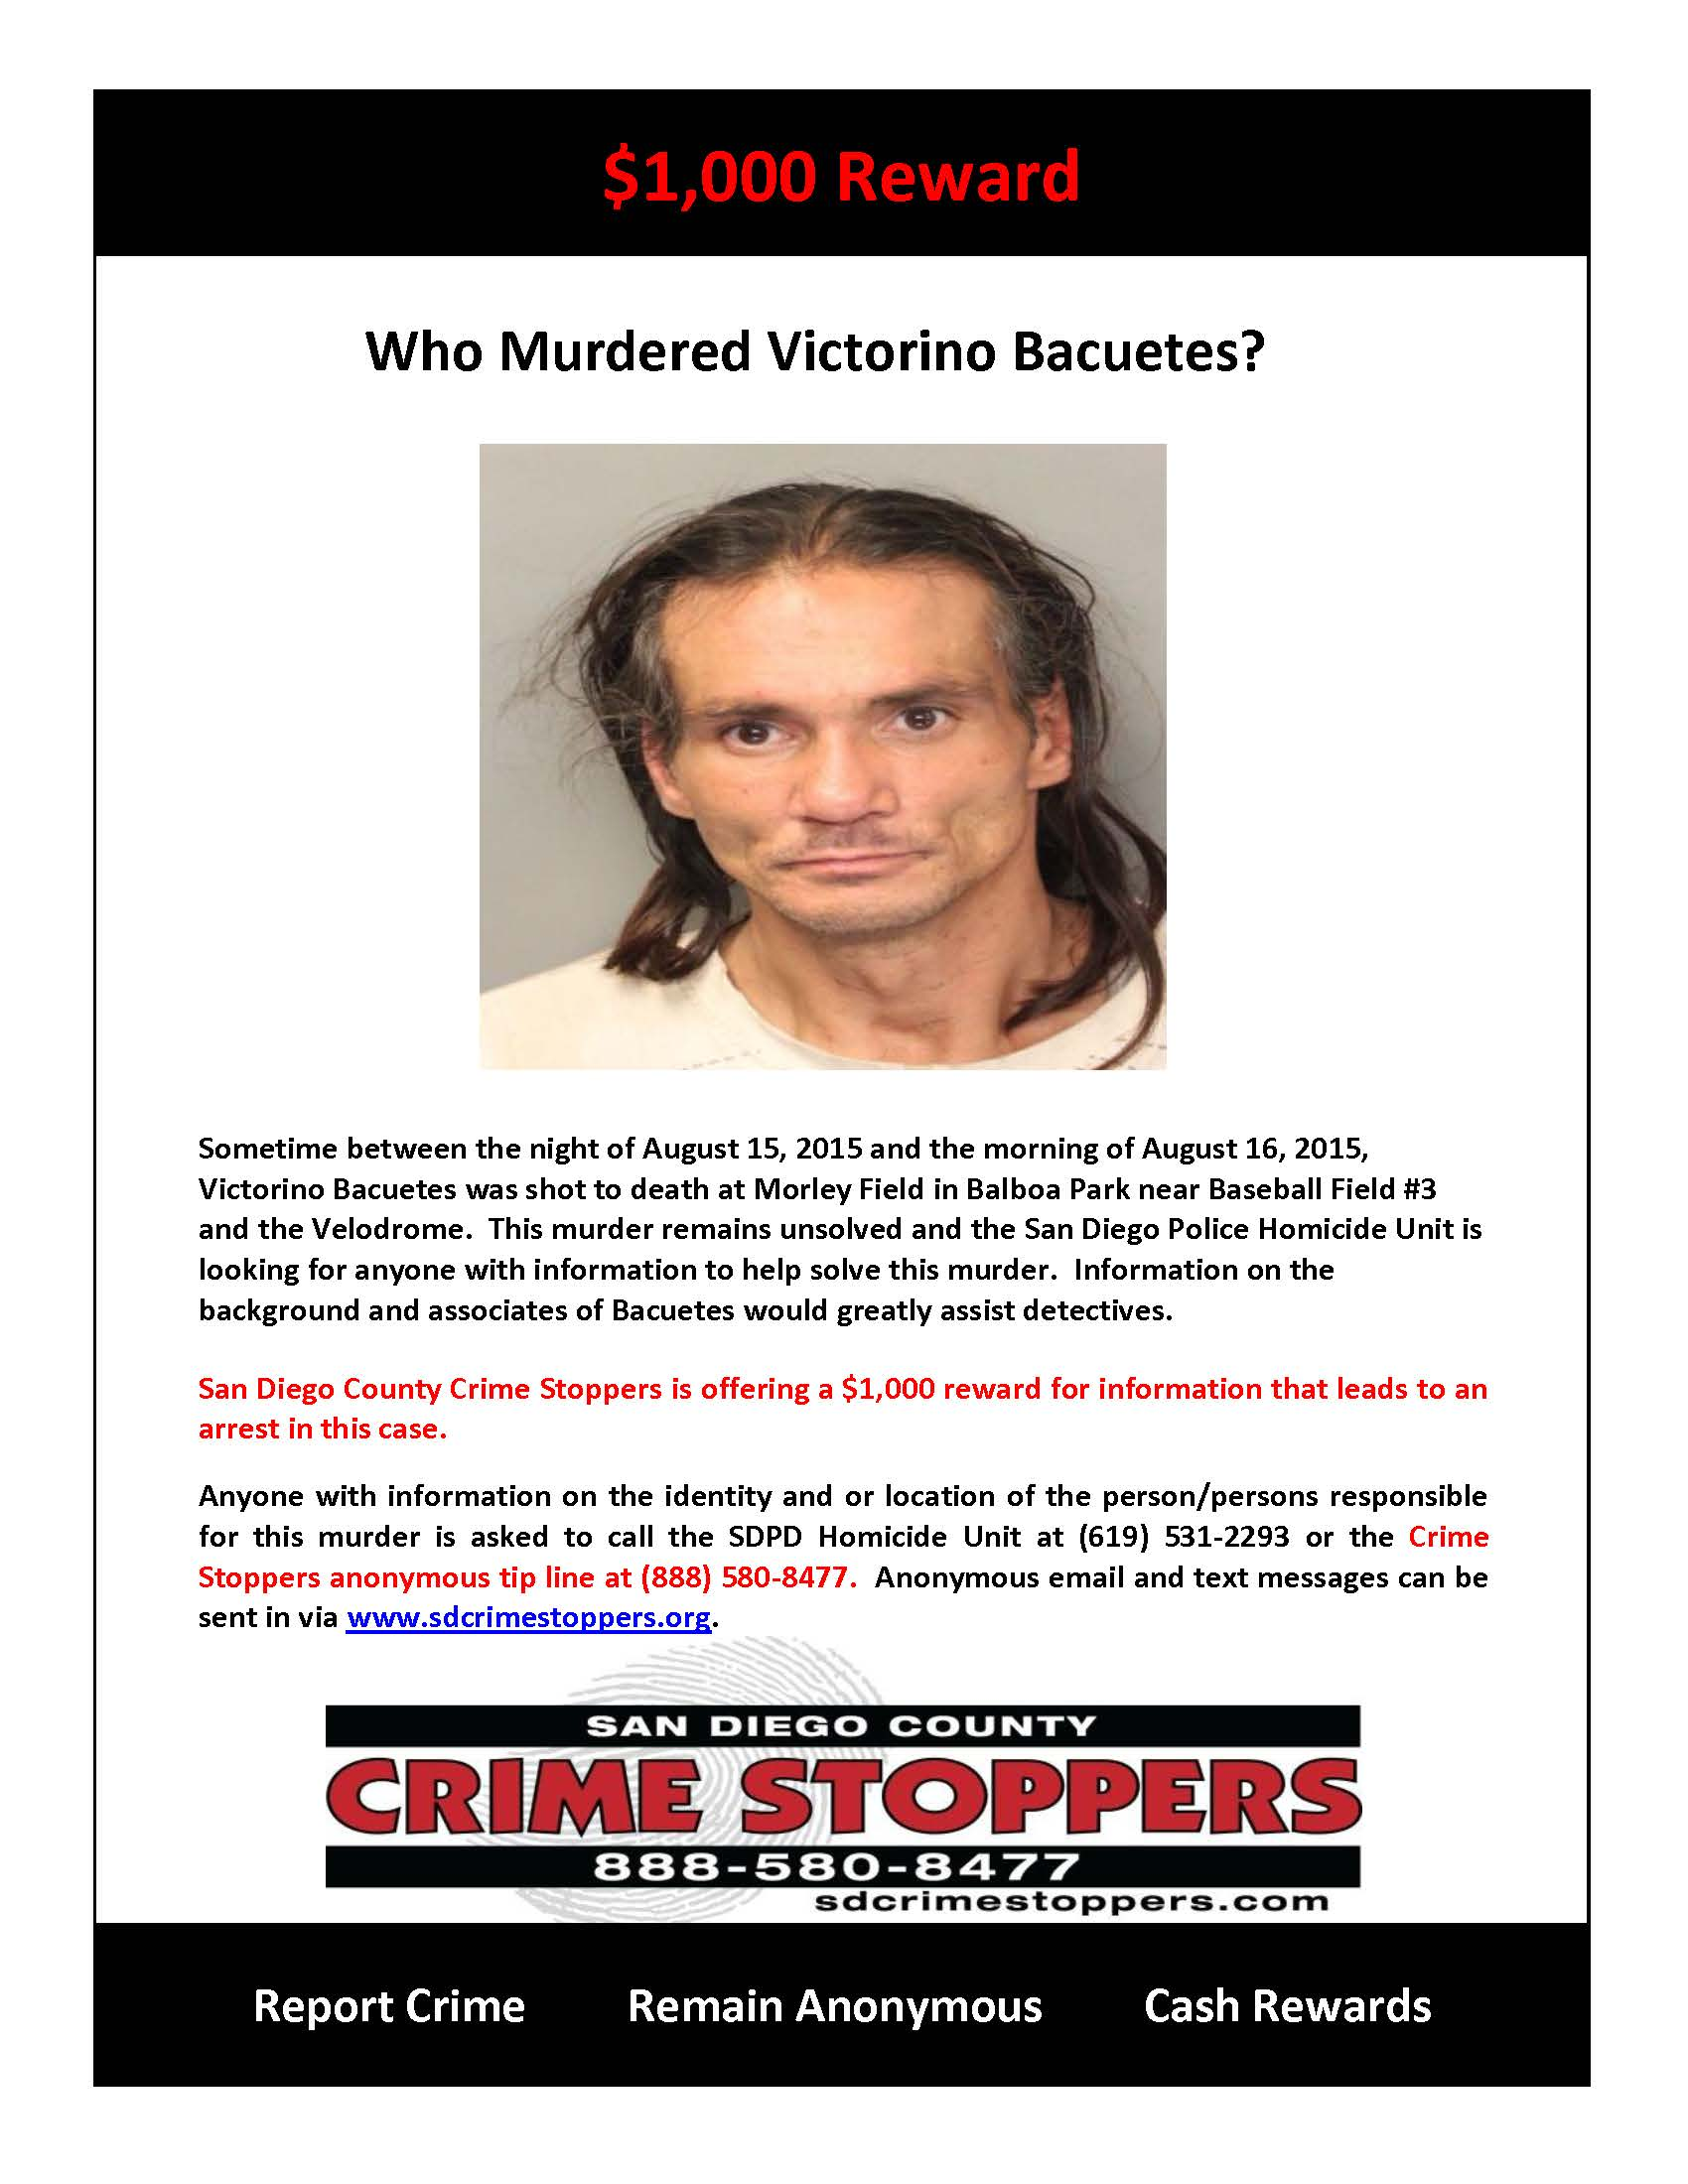 081915 Who Murdered Victorino Bacuetes